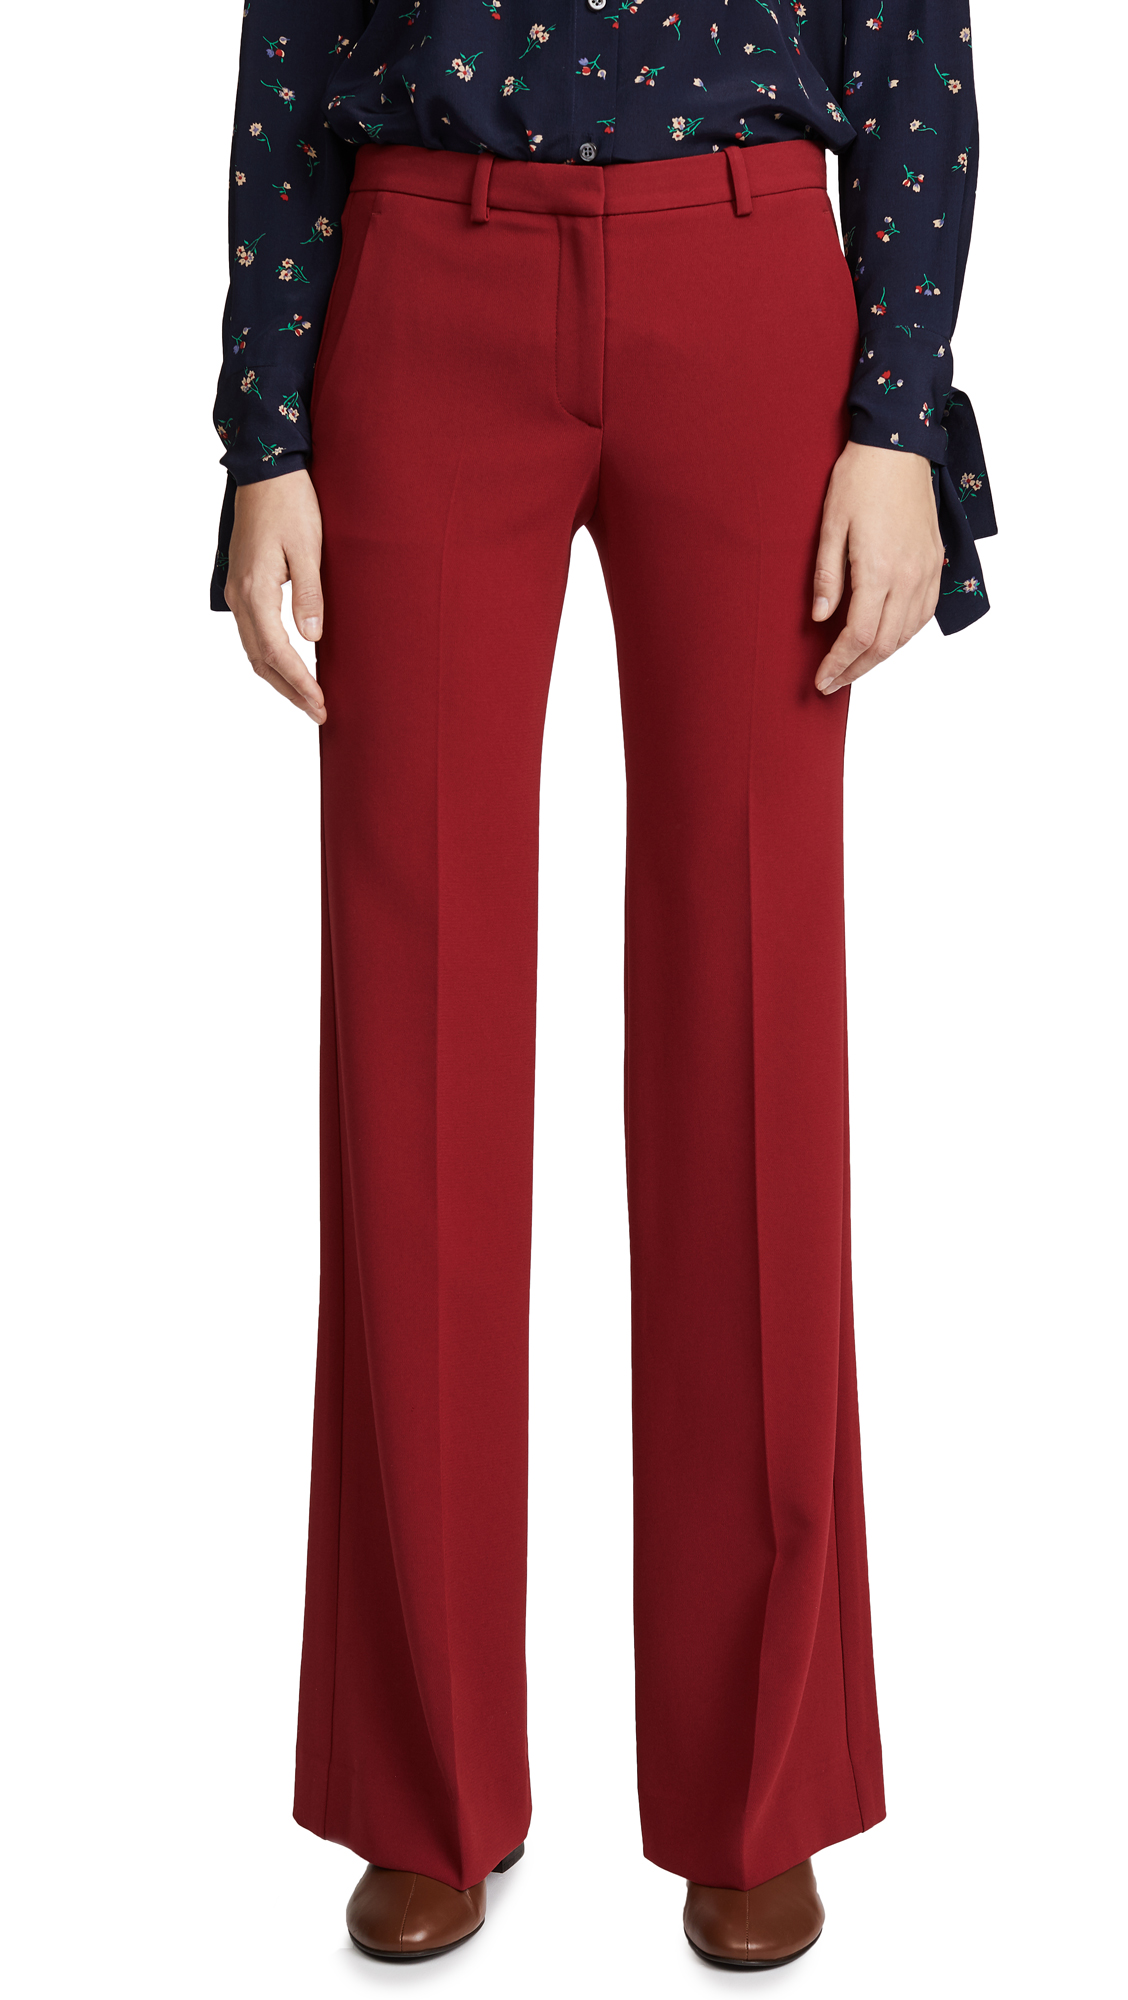 Theory Demitria 2 Pants - Bright Raspberry